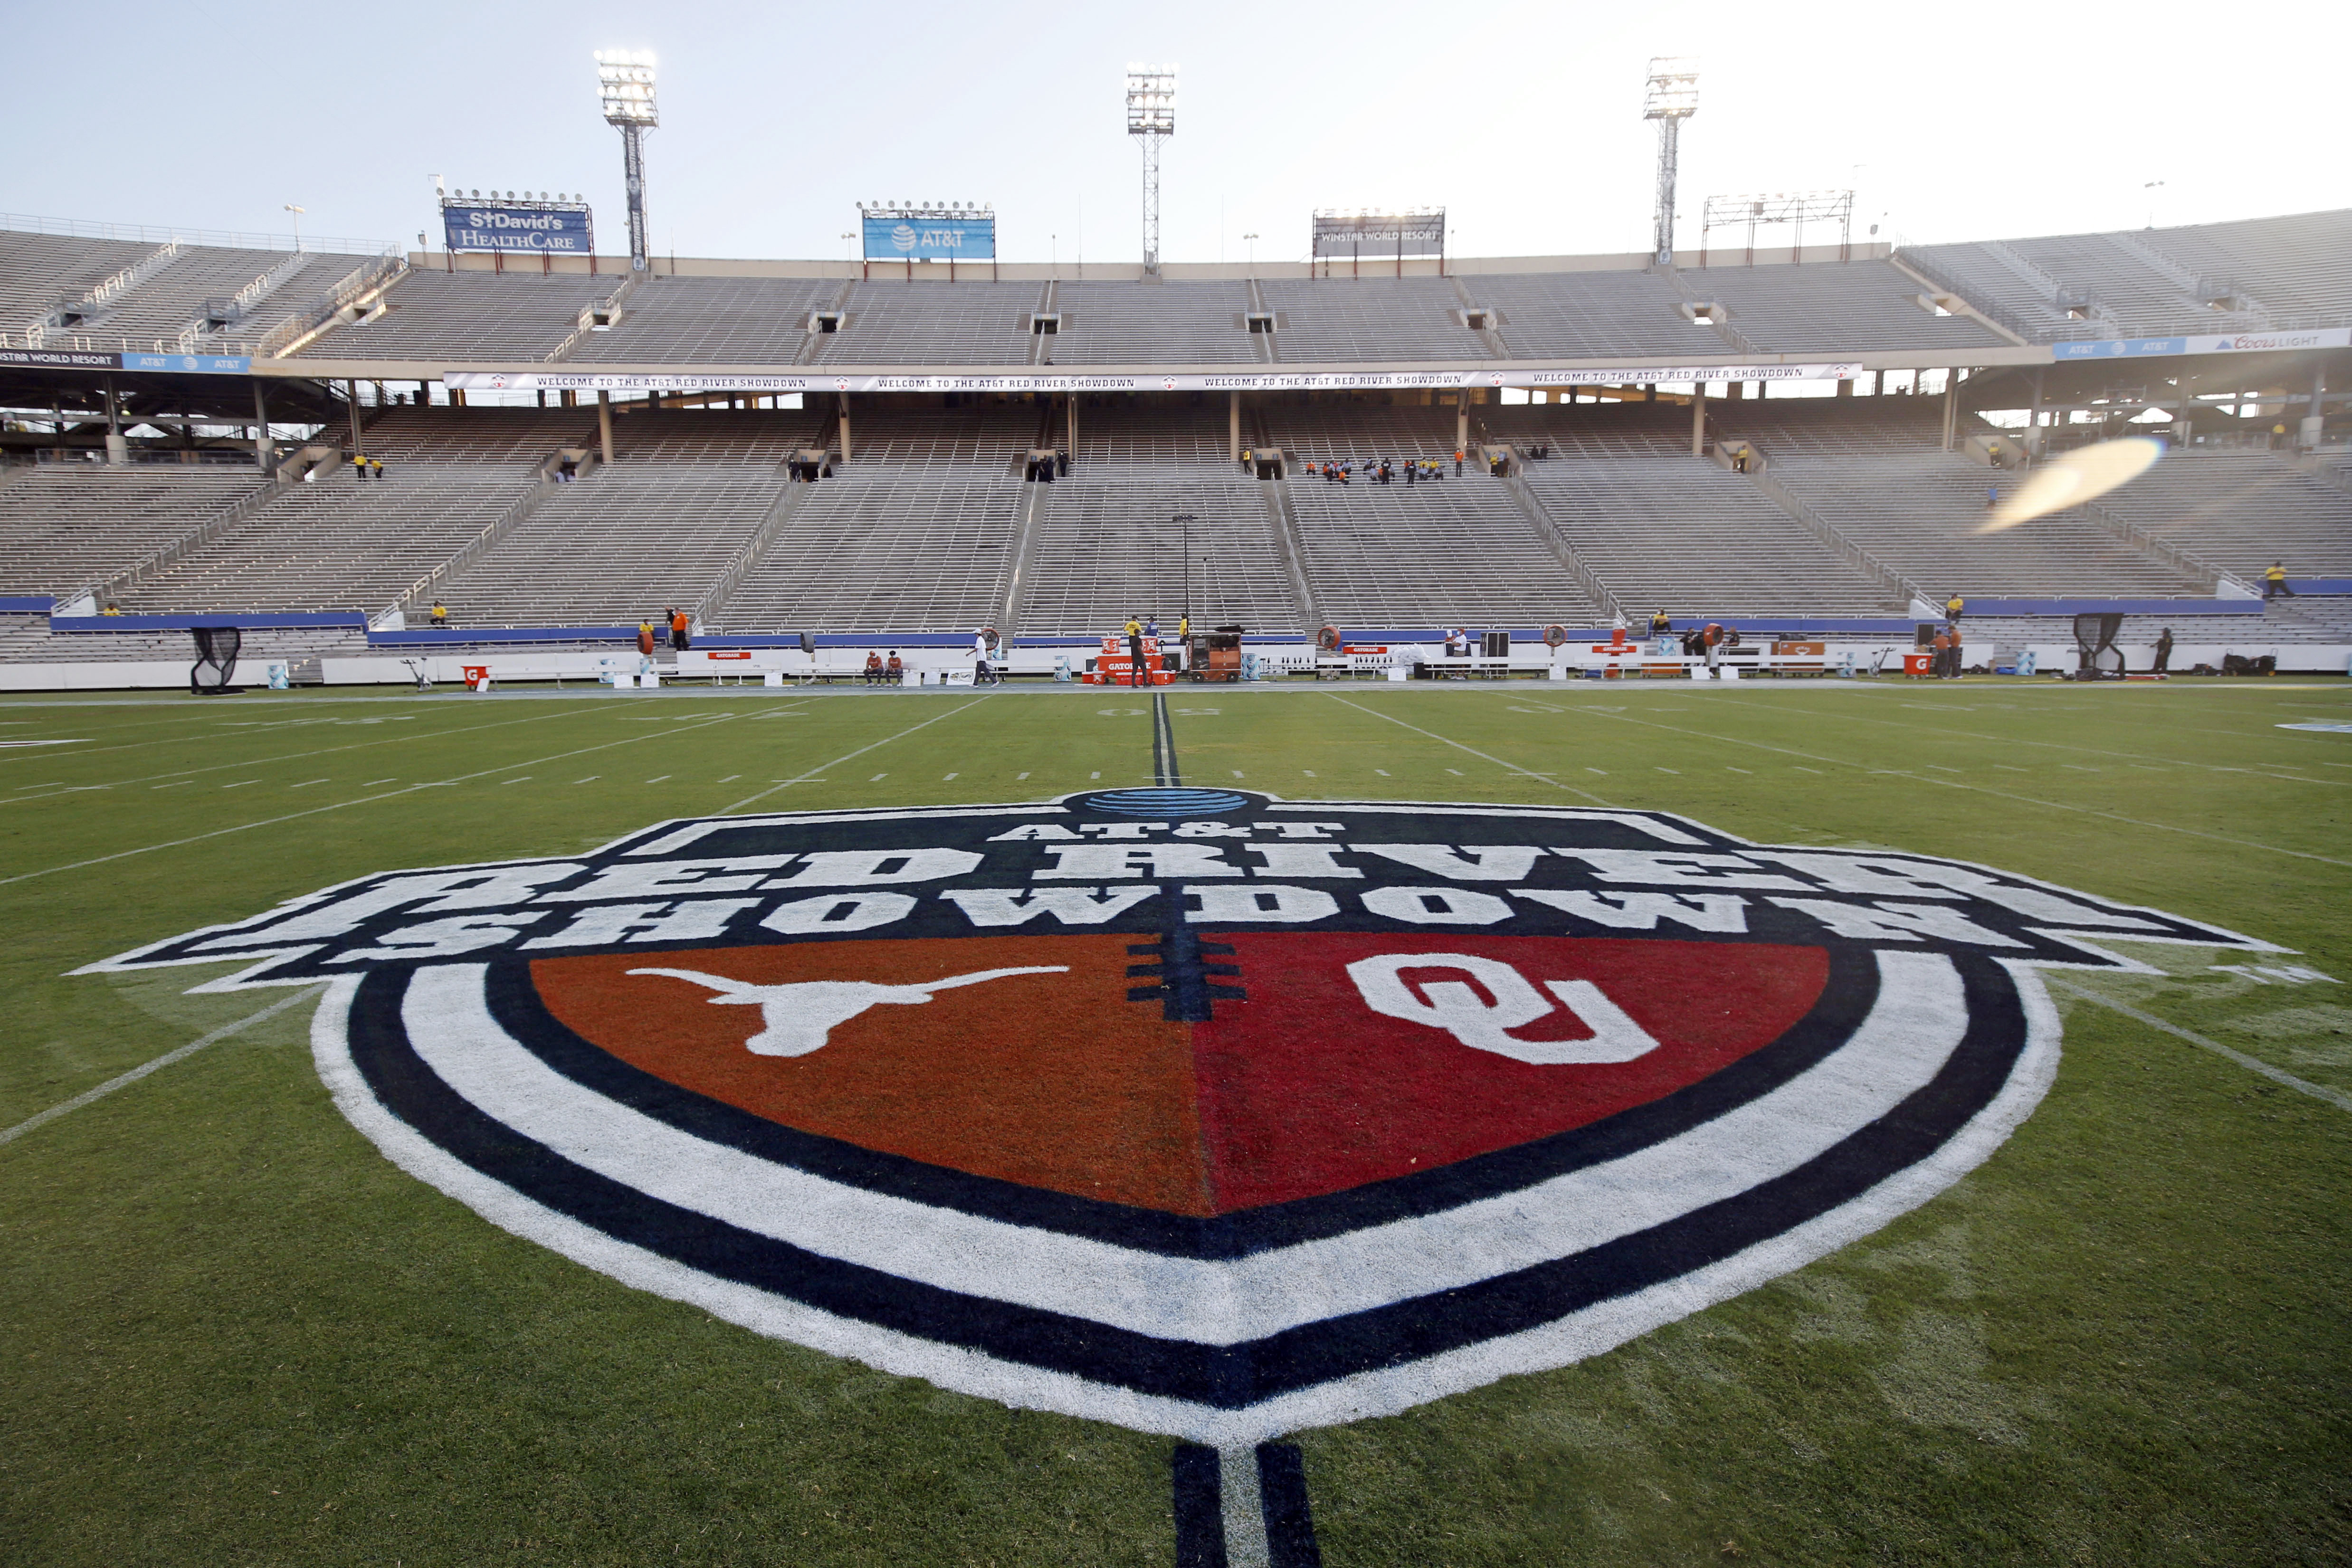 Earlier this week, the Big 12's Texas and Oklahoma announced they are seeking a future in the Southeastern Conference.